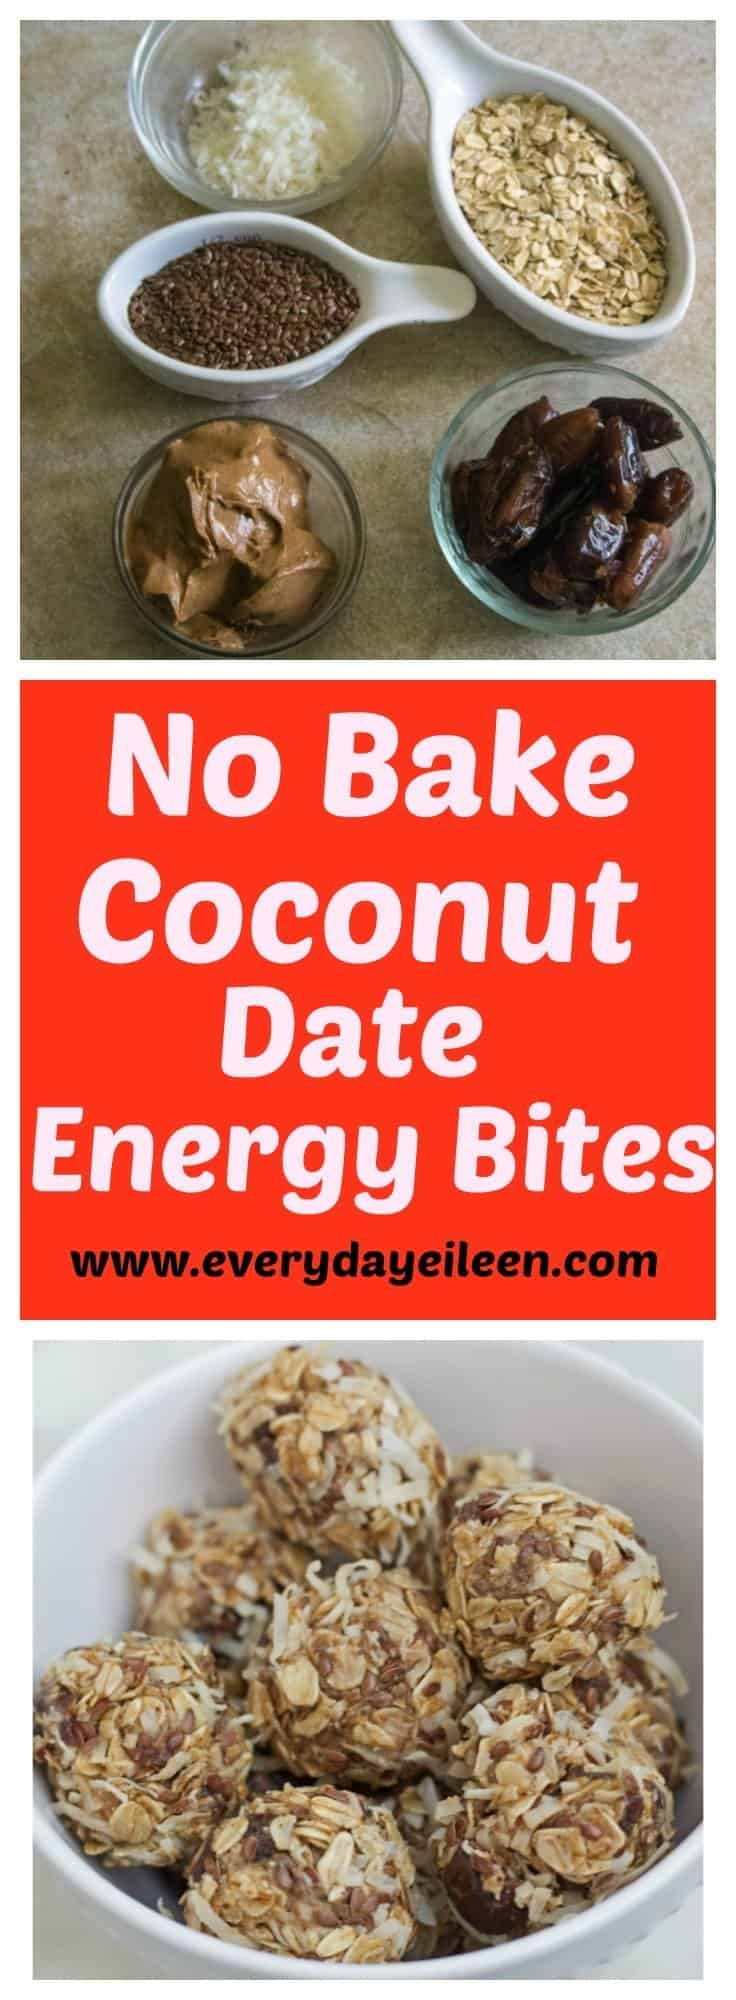 no-bake coconut date energy bites